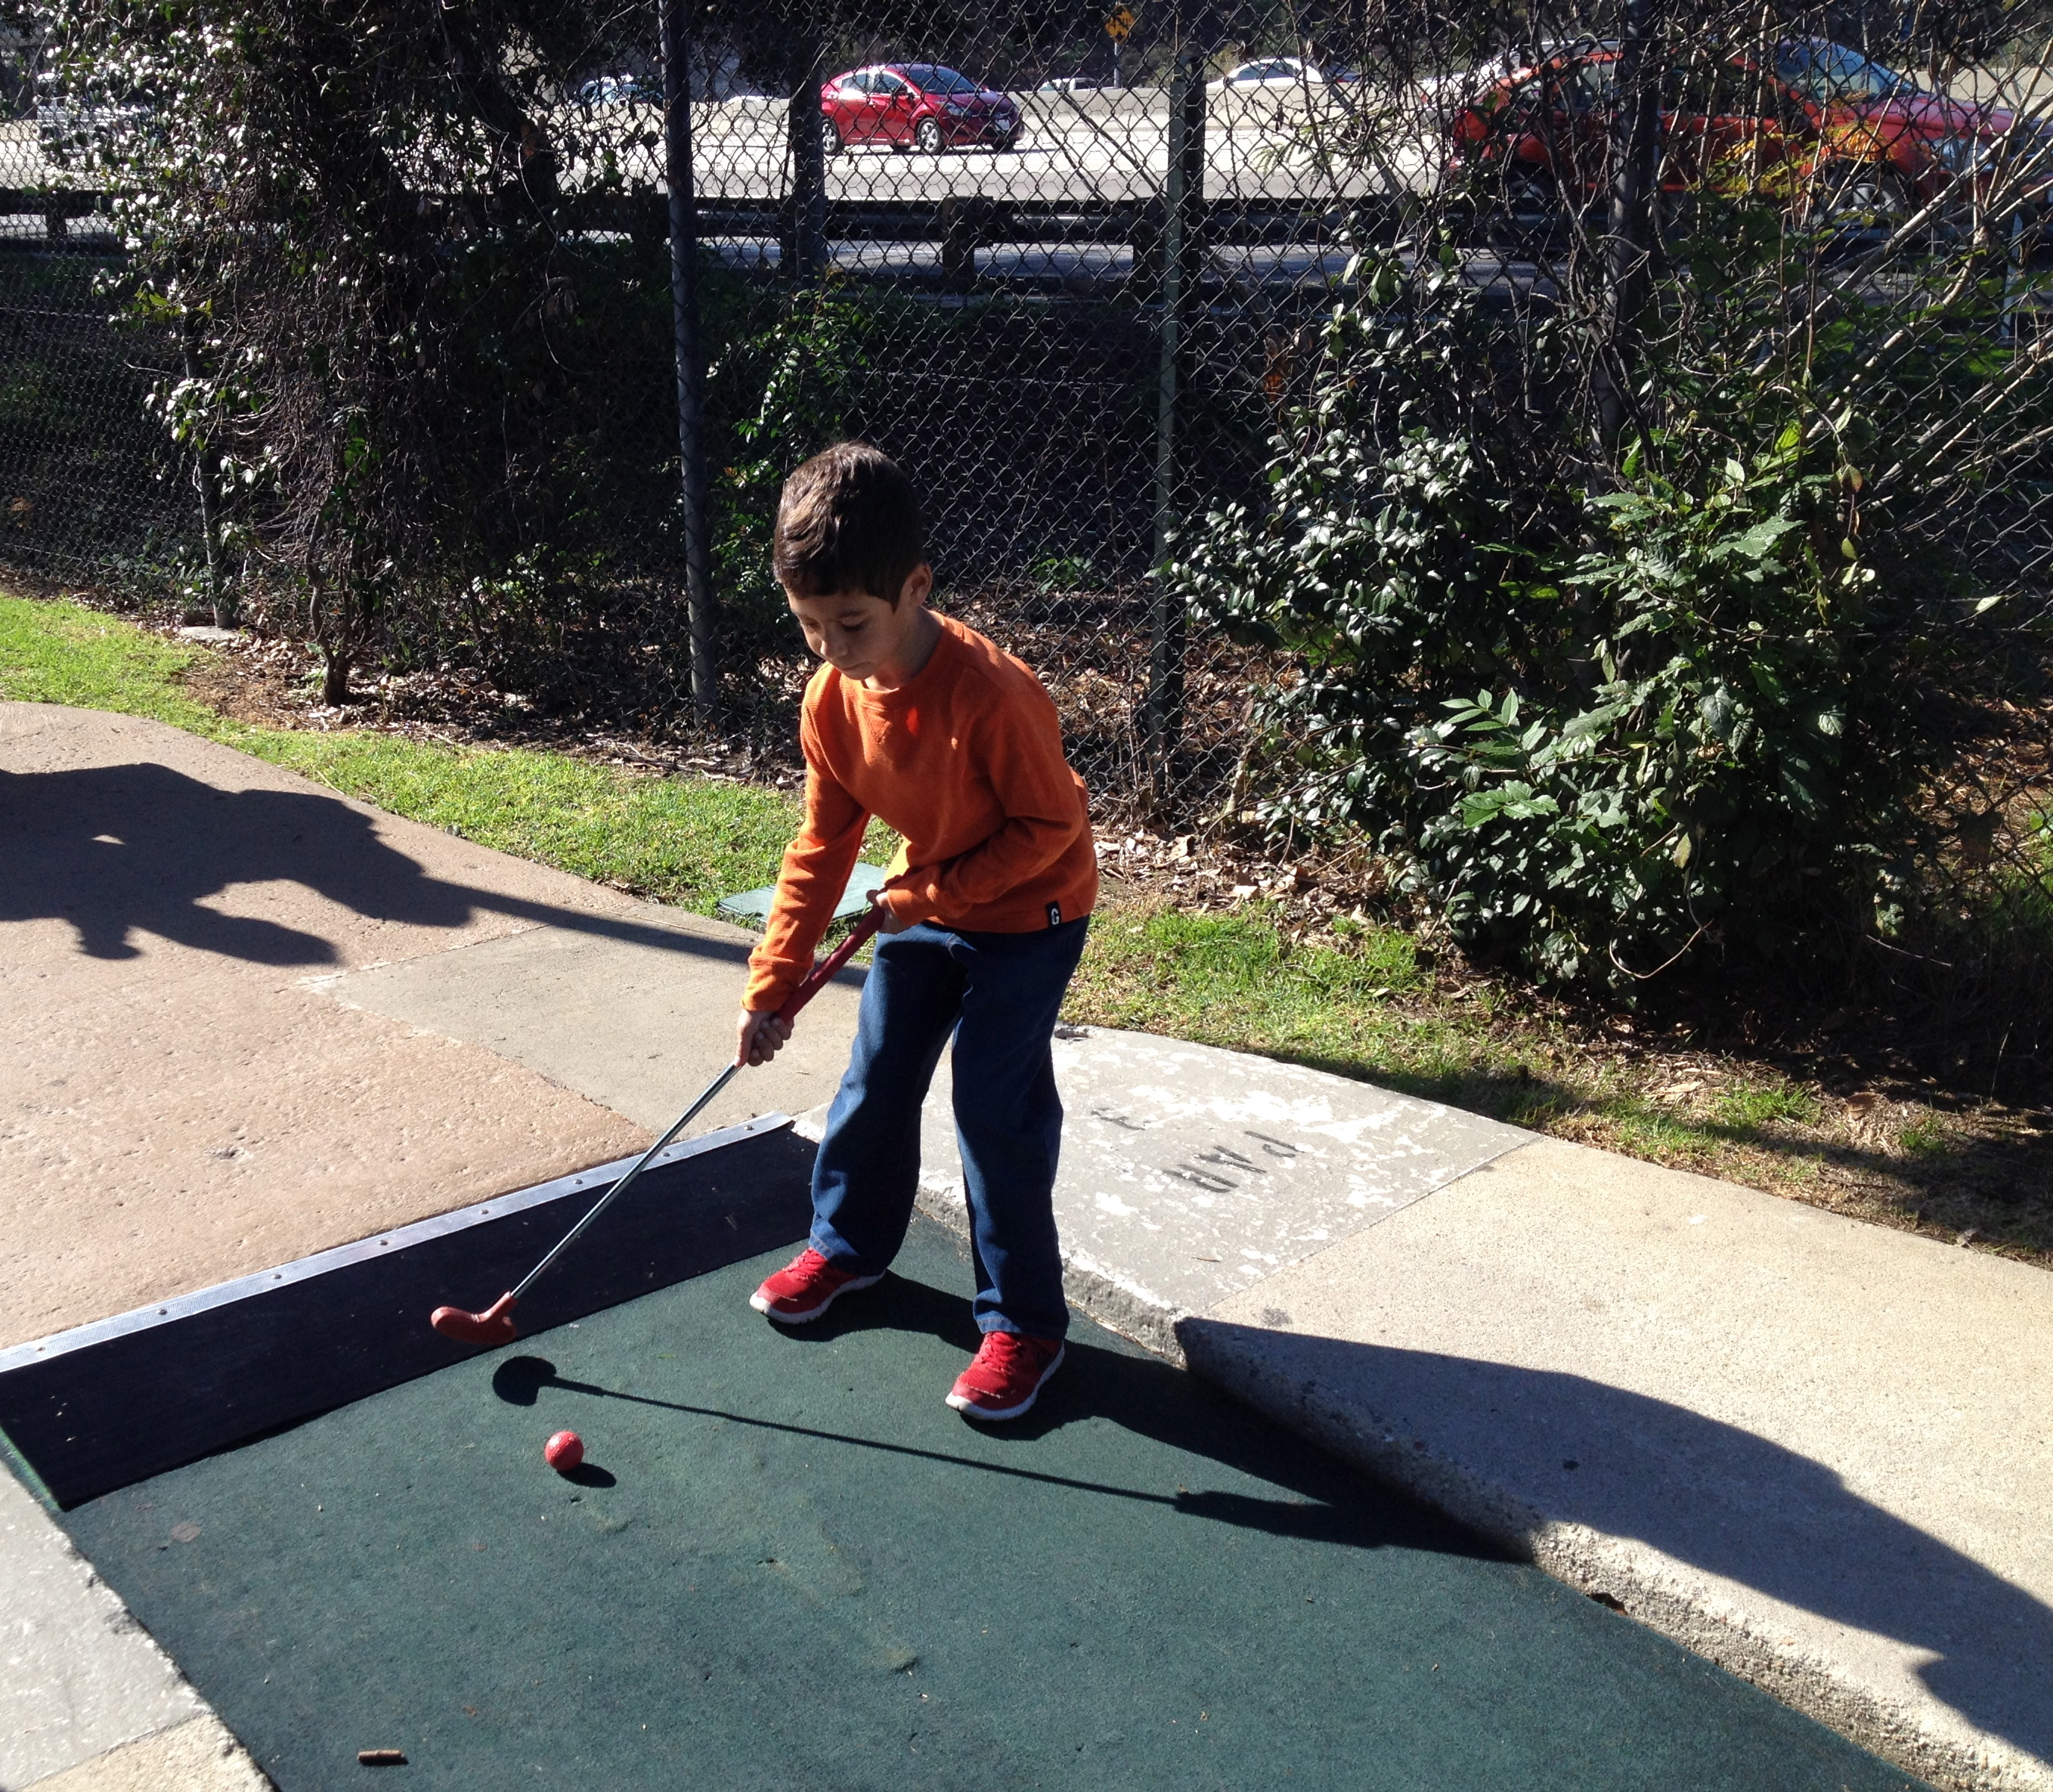 Ryan mini golf (photo by Wendy Kennar)